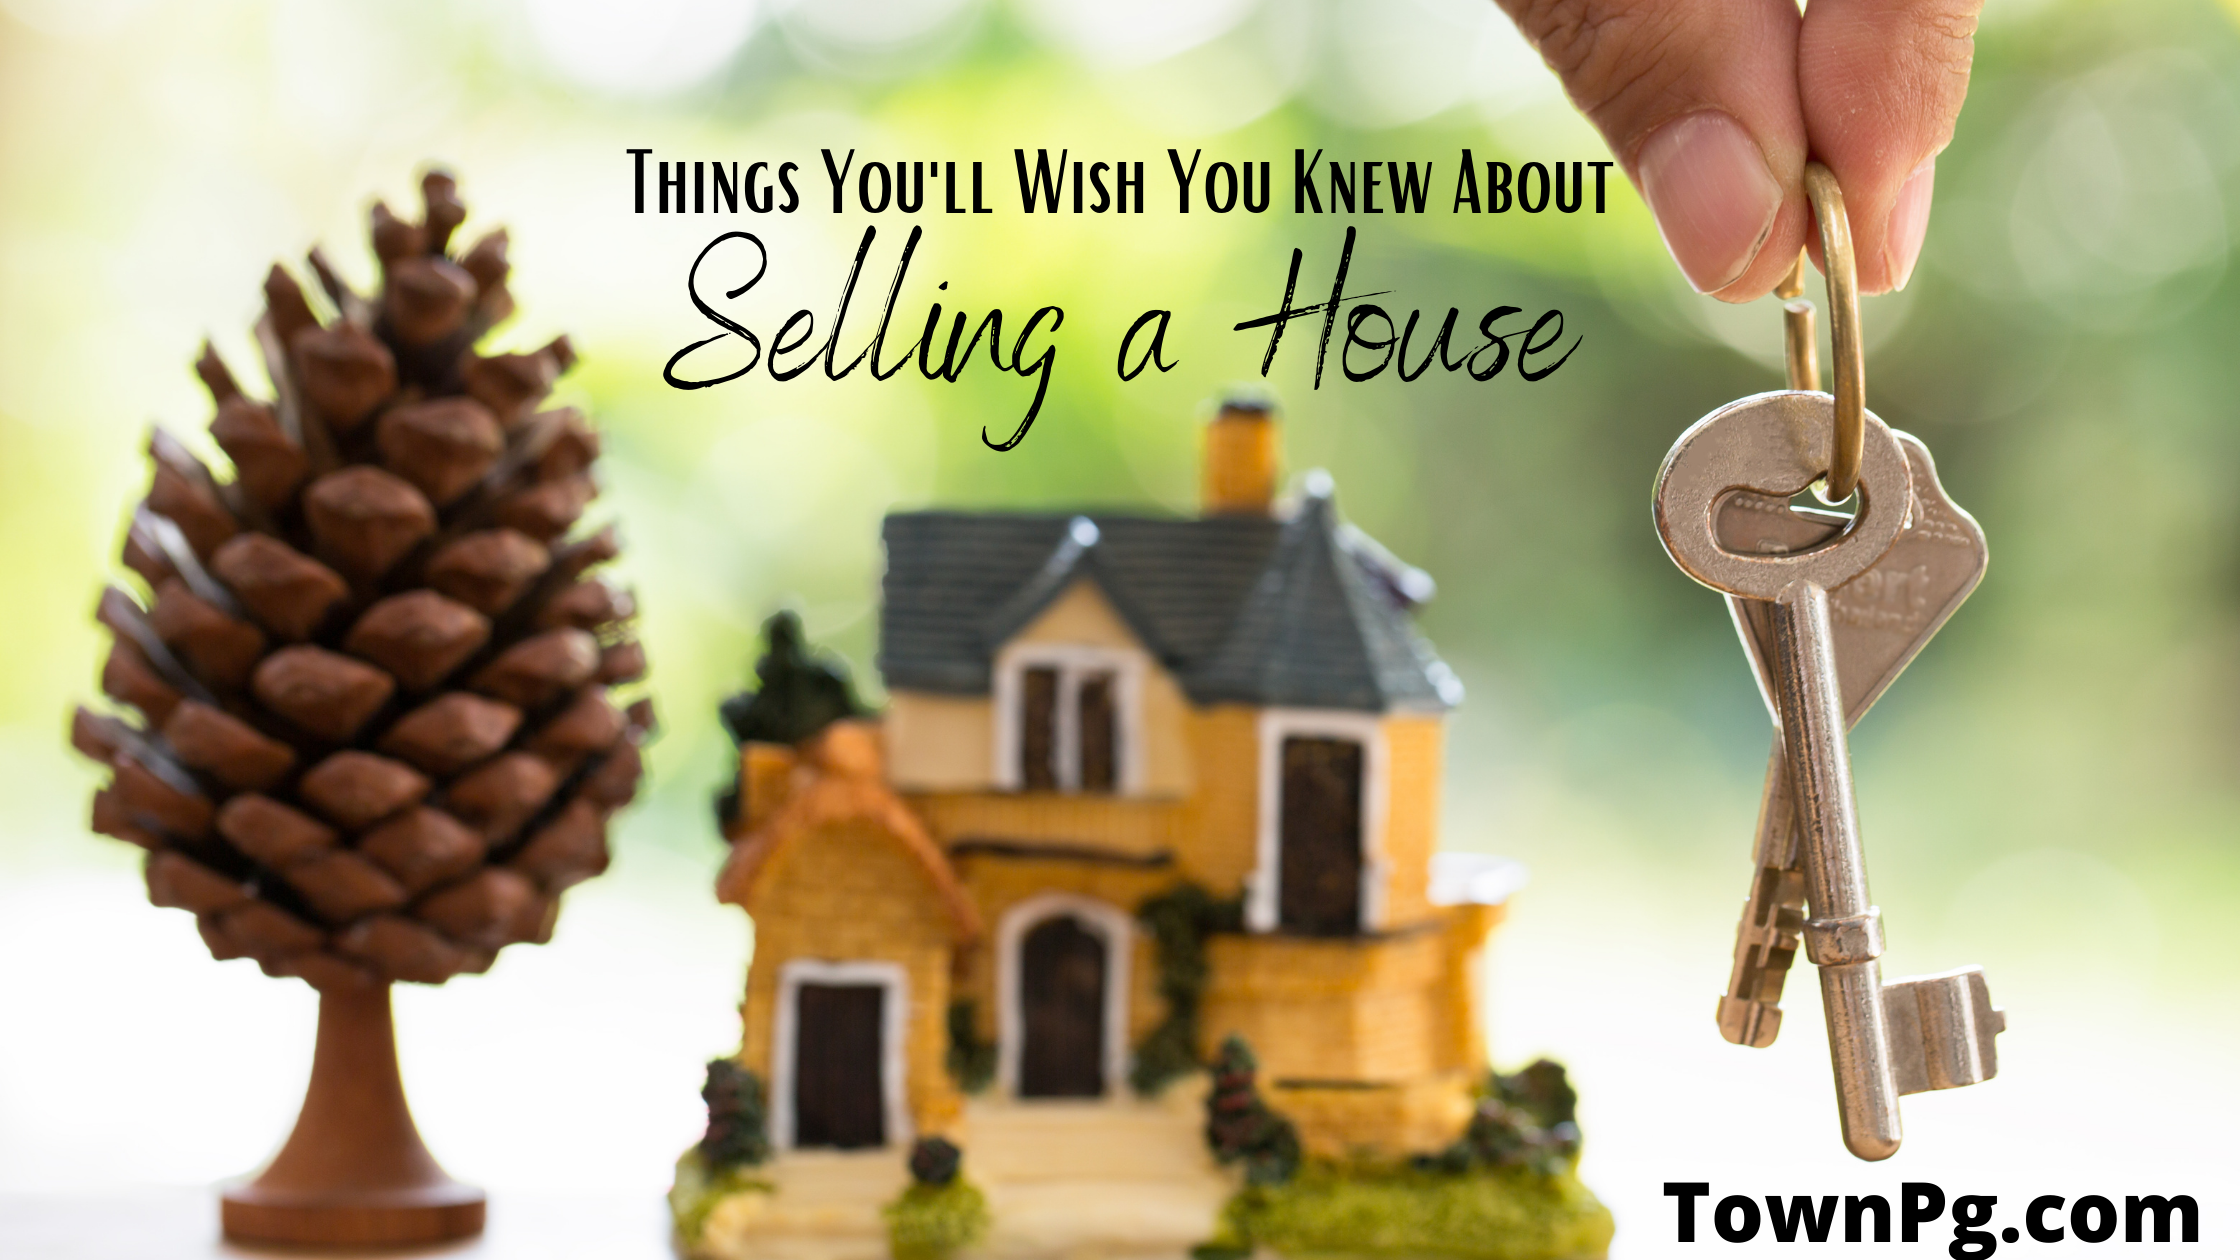 3 Things You'll Wish You Knew About Selling a House